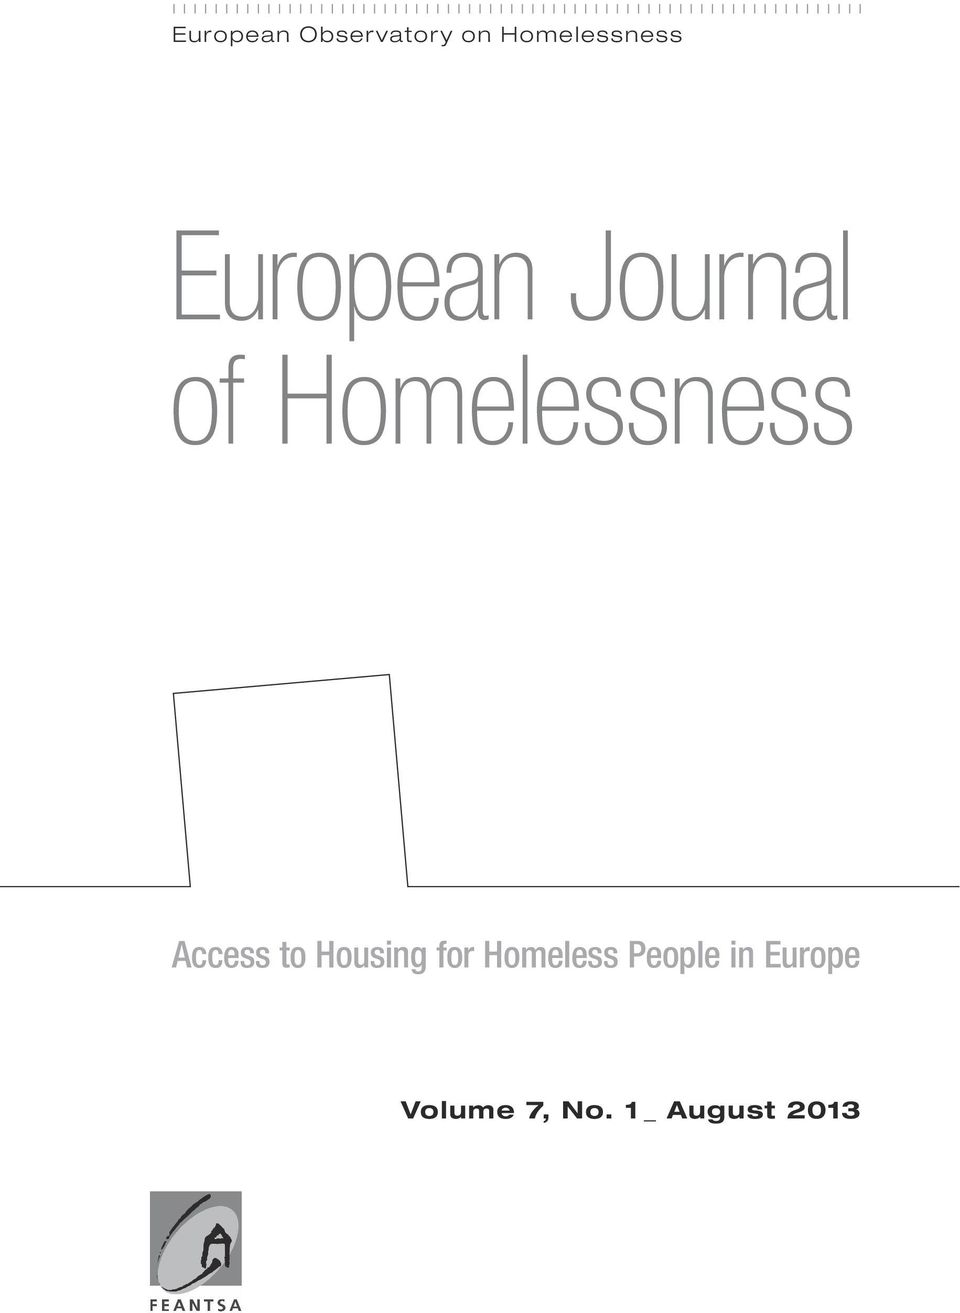 Access to Housing for Homeless